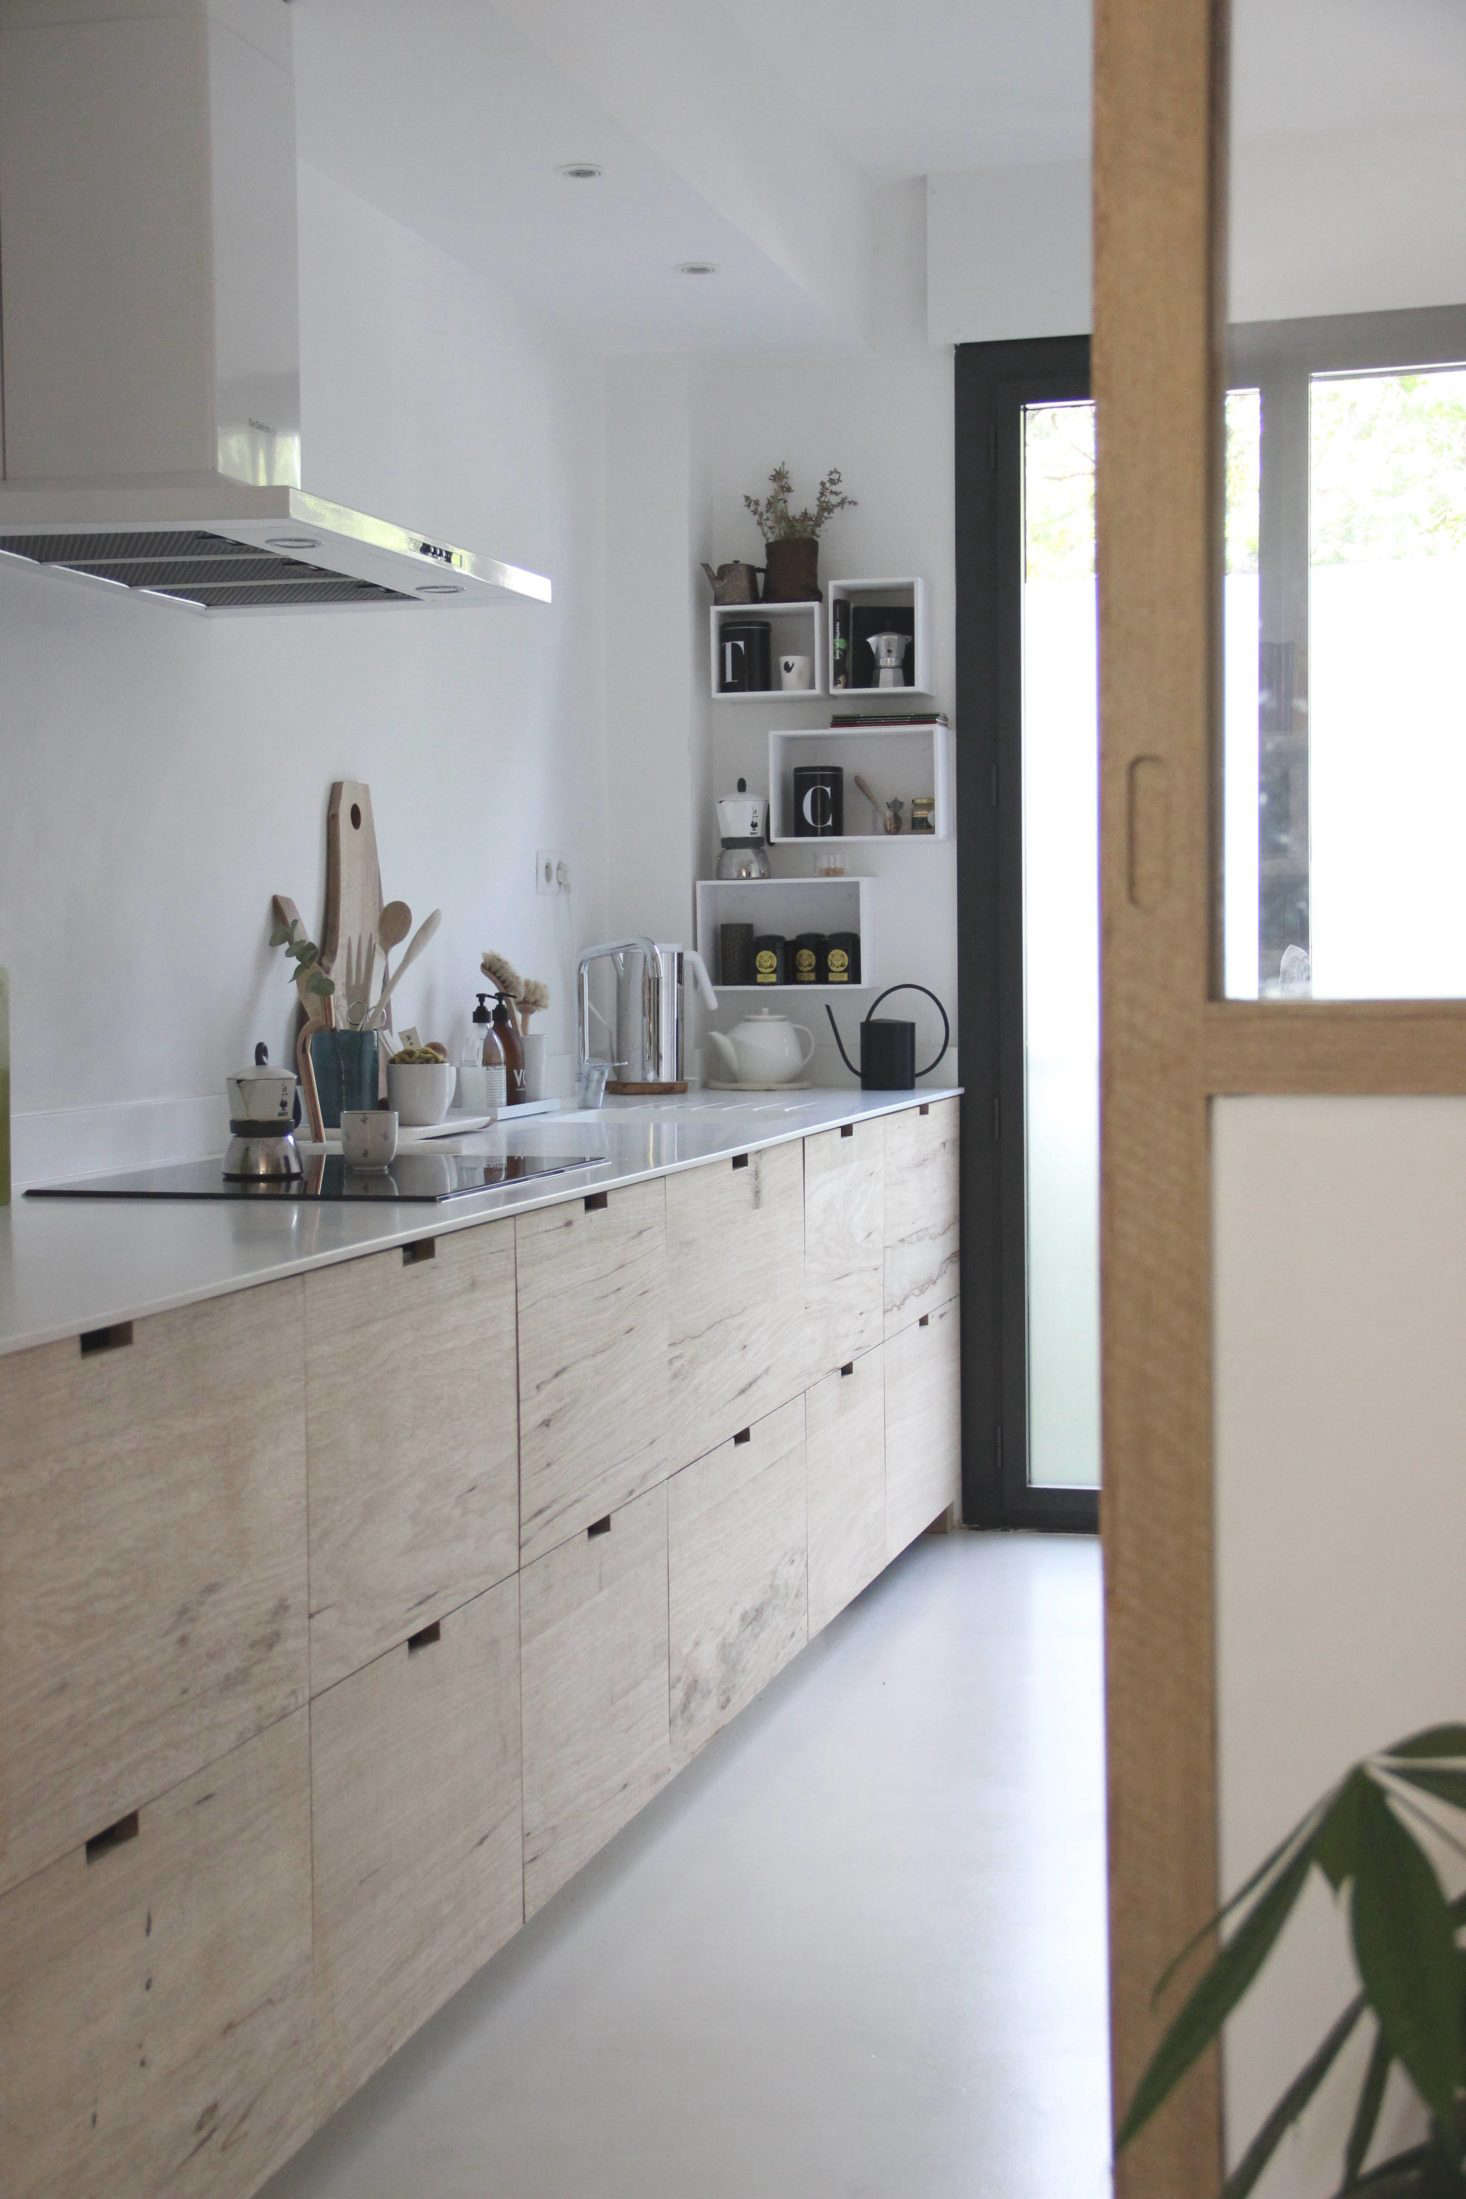 ikea kitchen cabinets design pictures in praise of 15 kitchens from the remodelista archives it s an structure that i dressed up with tailor made wooden drawer